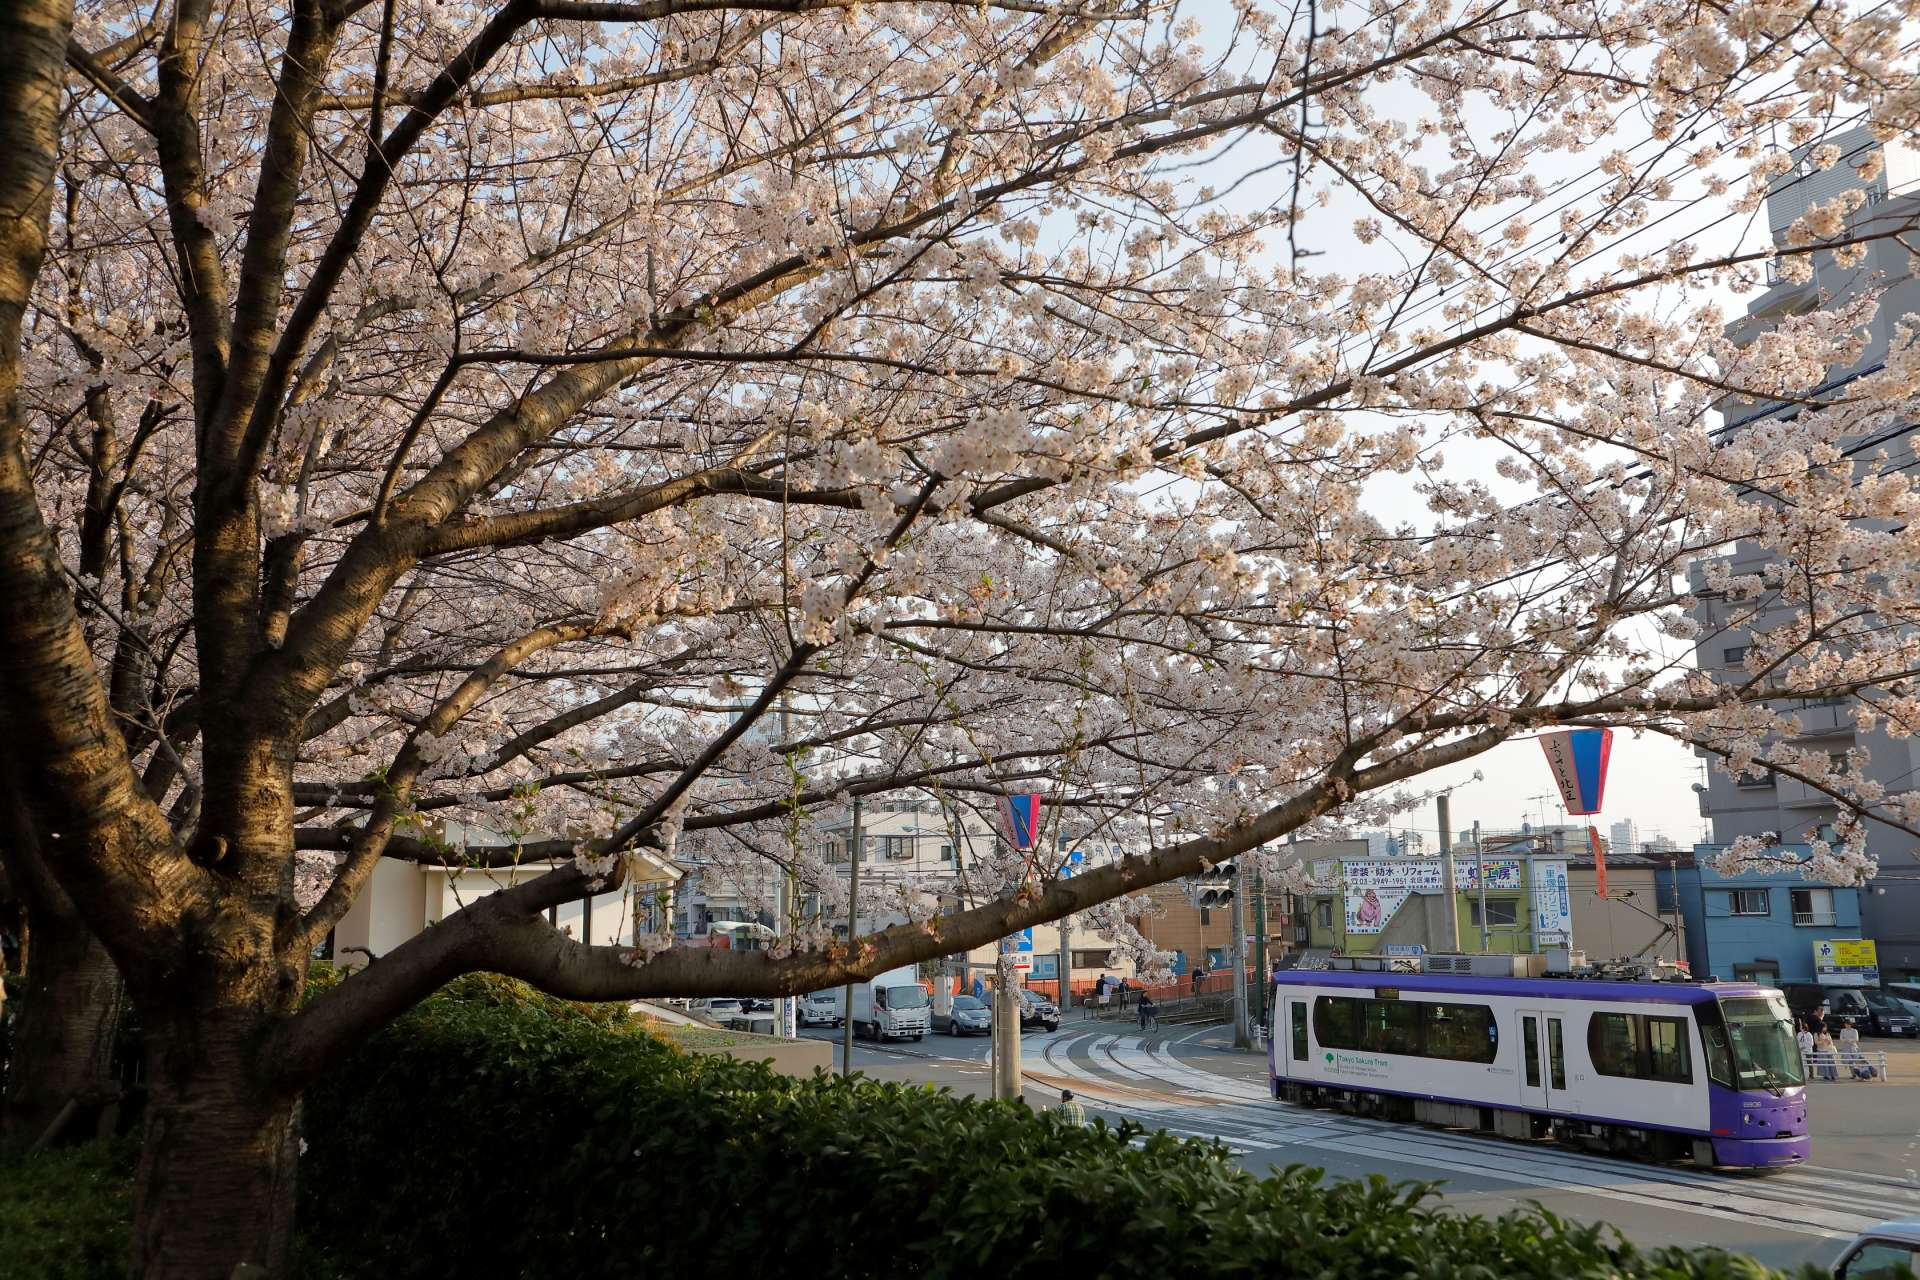 Toden seen through the cherry blossoms